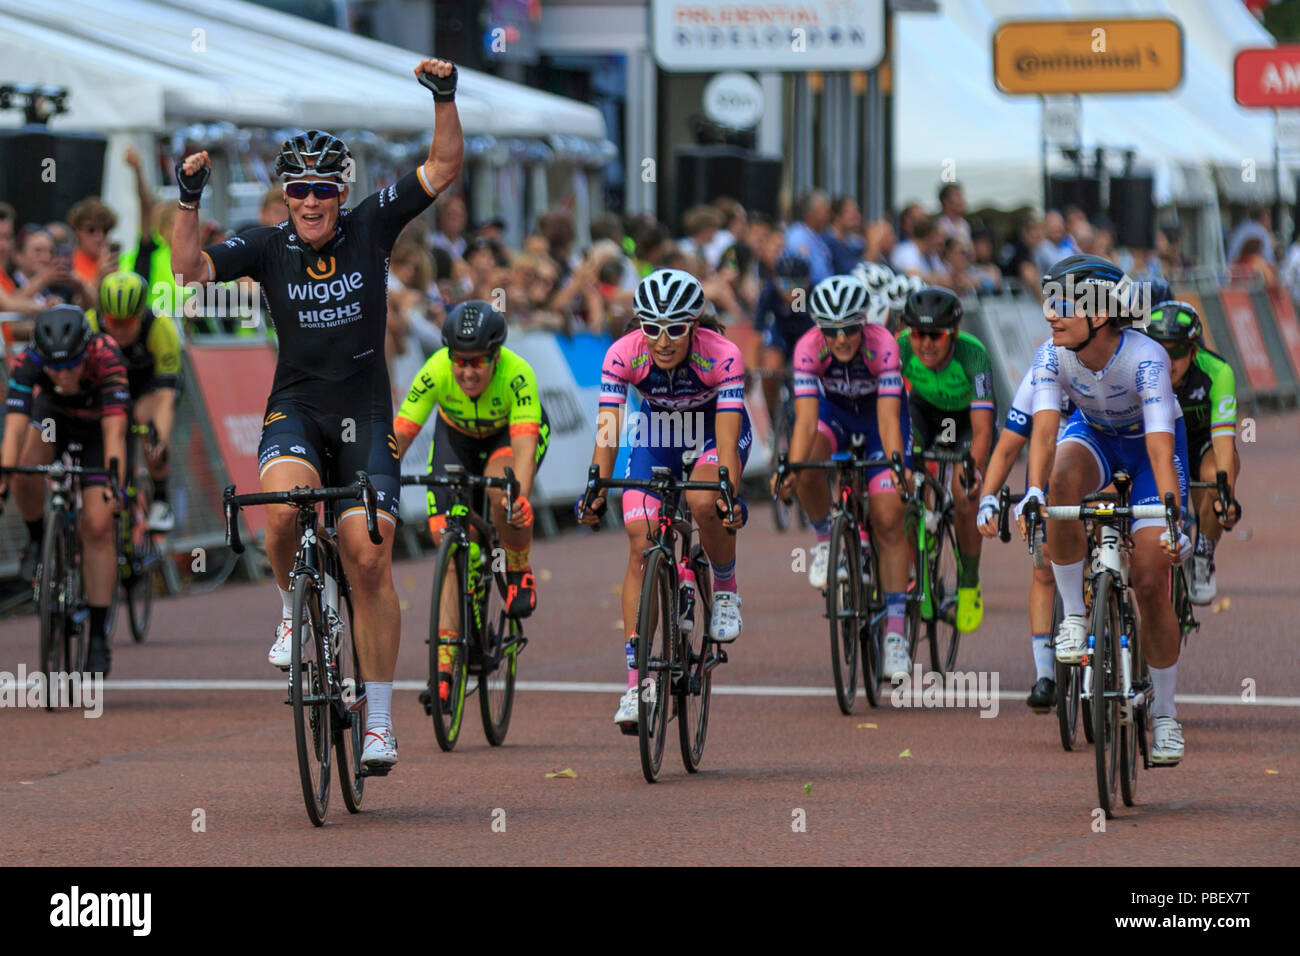 London, UK, 28 July 2018. Prudential RideLondon Classique. Kirsten Wild (Wiggle-High5, NED, left) wins the bunch sprint at the RideLondon Classique - a 65km race around a 5.4km circuit finishing on The Mall. Wild beat Marianne Vos (Waowdeals, NED, right) and Elisa Balsamo (Valcar PBM, ITA, centre). Stock Photo